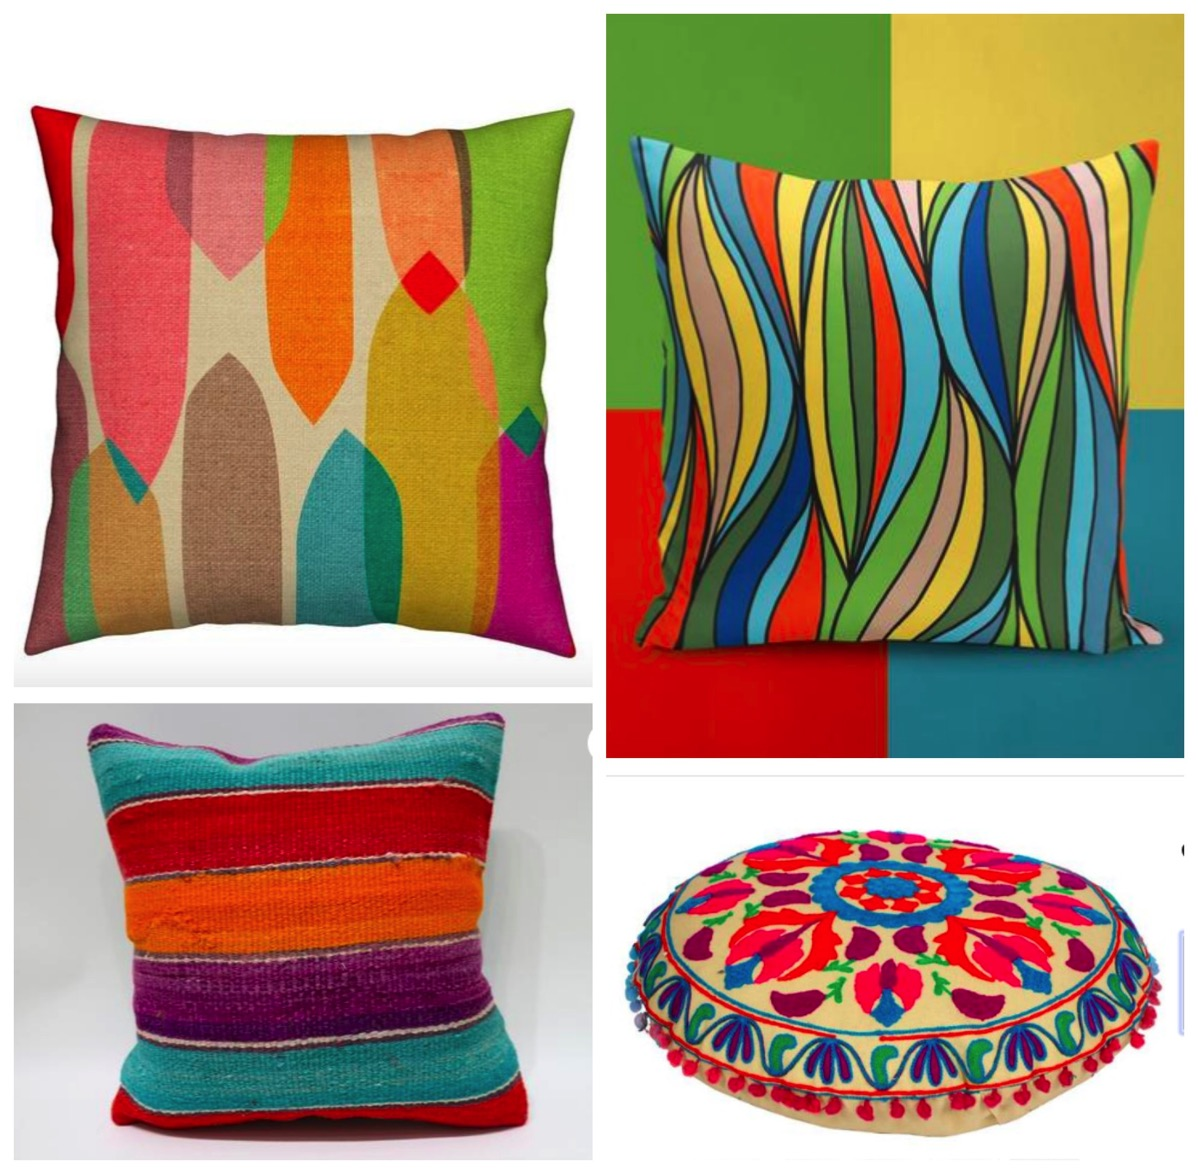 Colorful geometric decorative pillows for home boho style pillows colorful pillows for home dig and hang